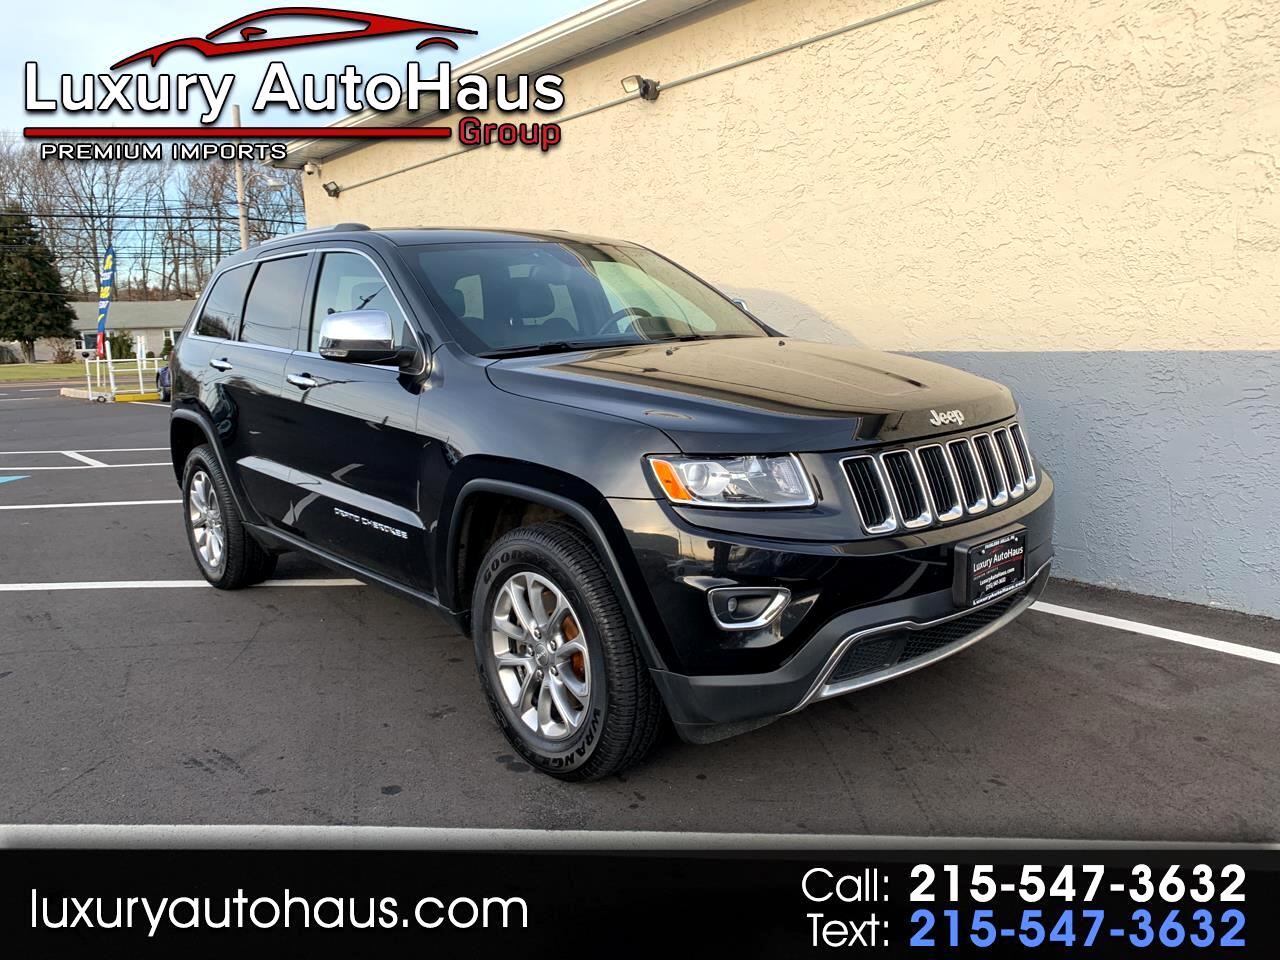 2014 Jeep Grand Cherokee Limited 4WD, Diesel